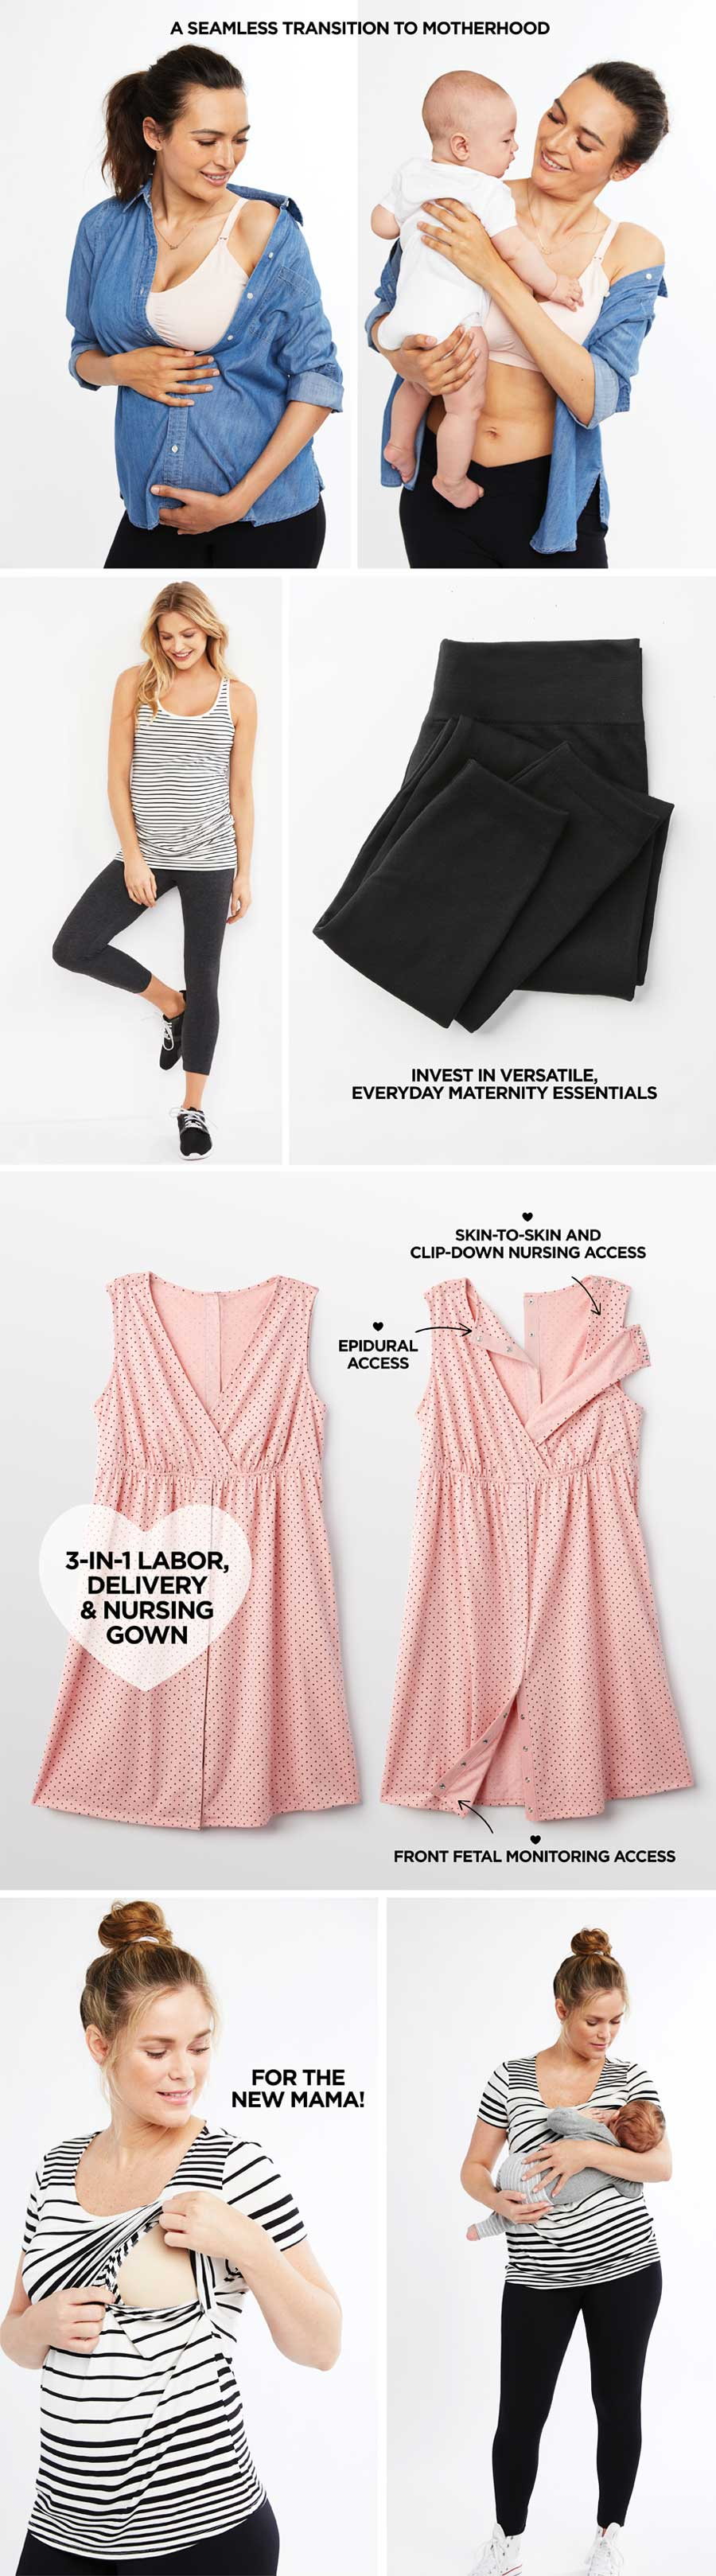 9ae67b5047882 Guide To Maternity Clothing By Trimester - Macy's